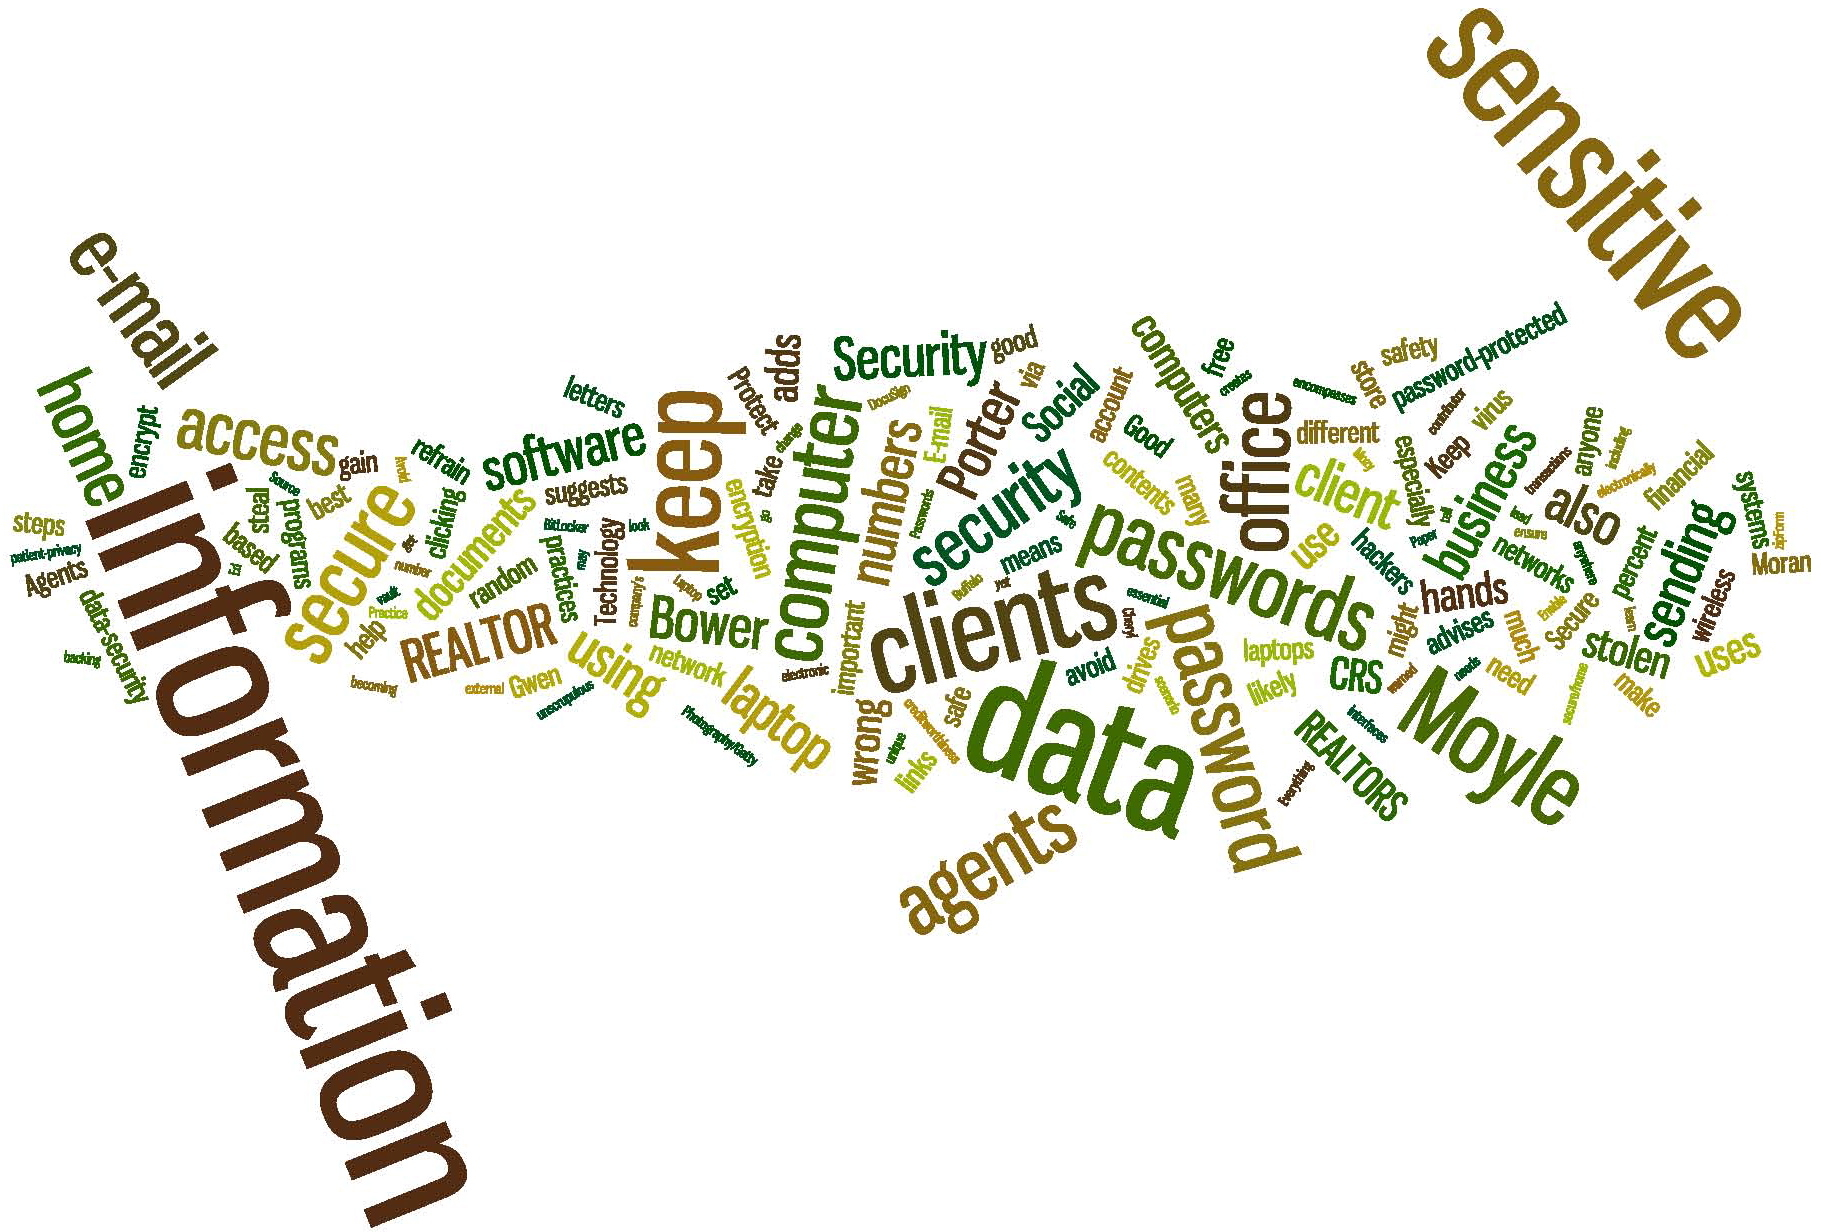 protecting client information by wordle